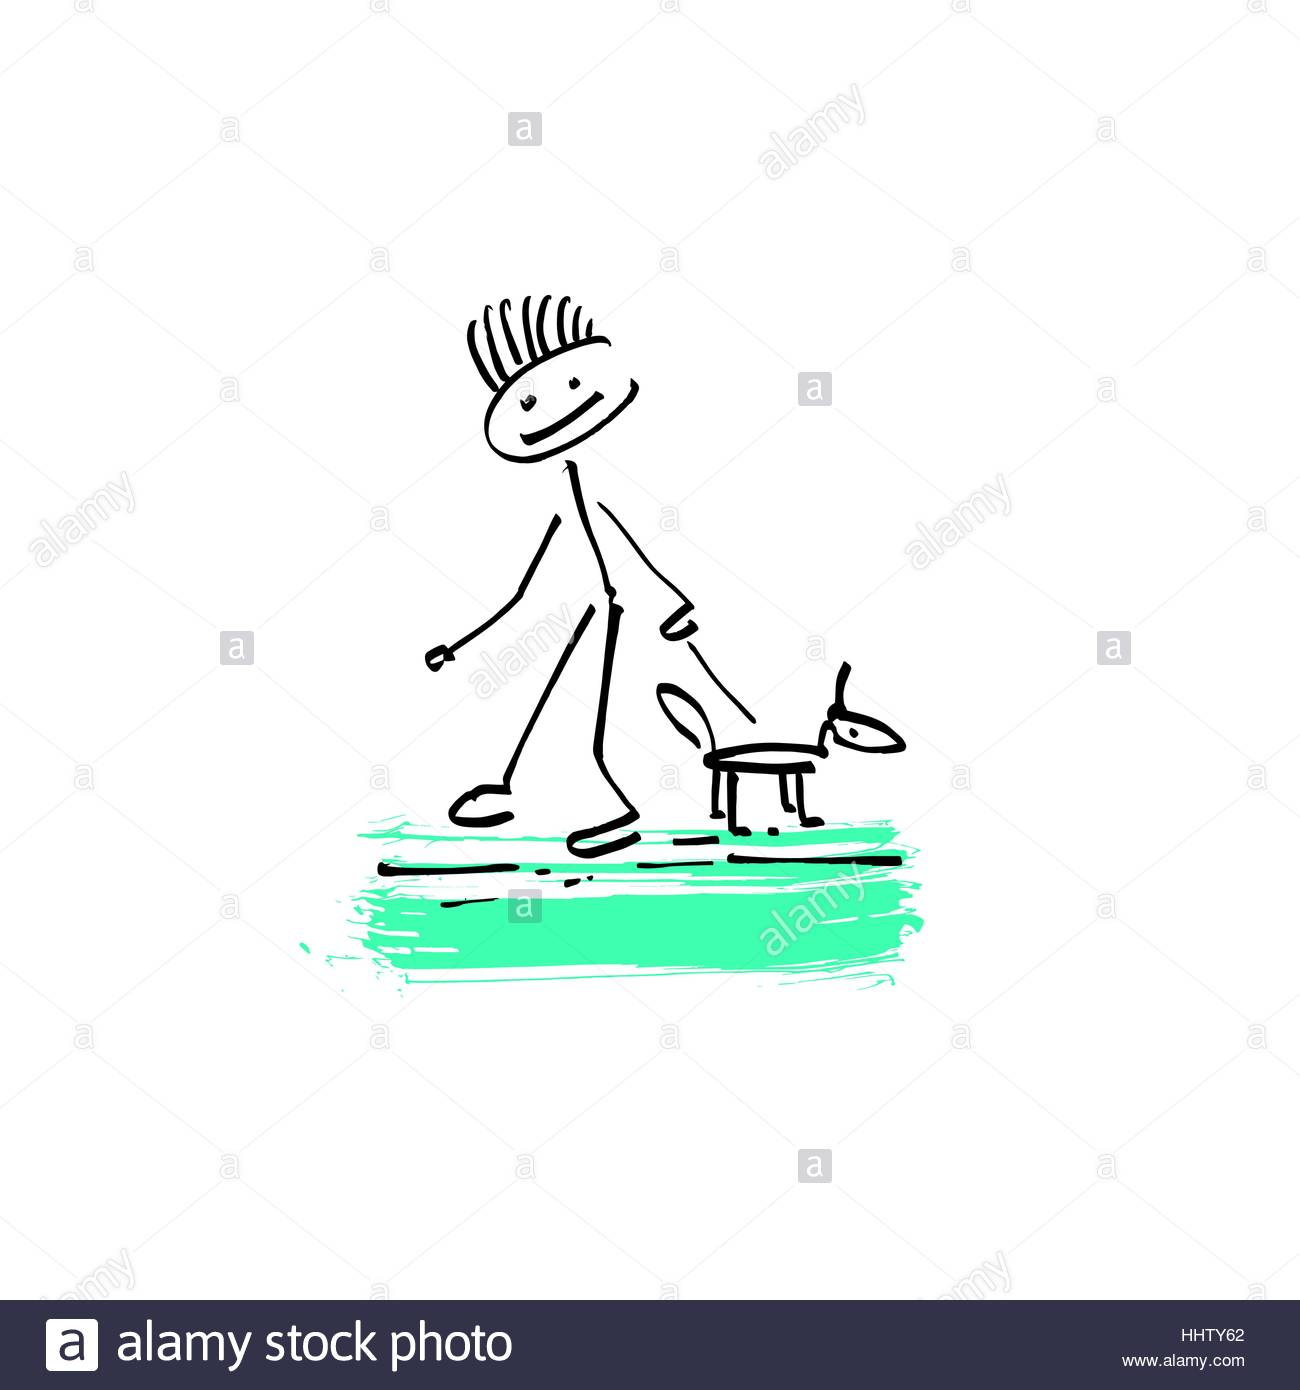 1300x1390 Drawing Sketch Doodle Human Stick Figure Man Walking With A Dog